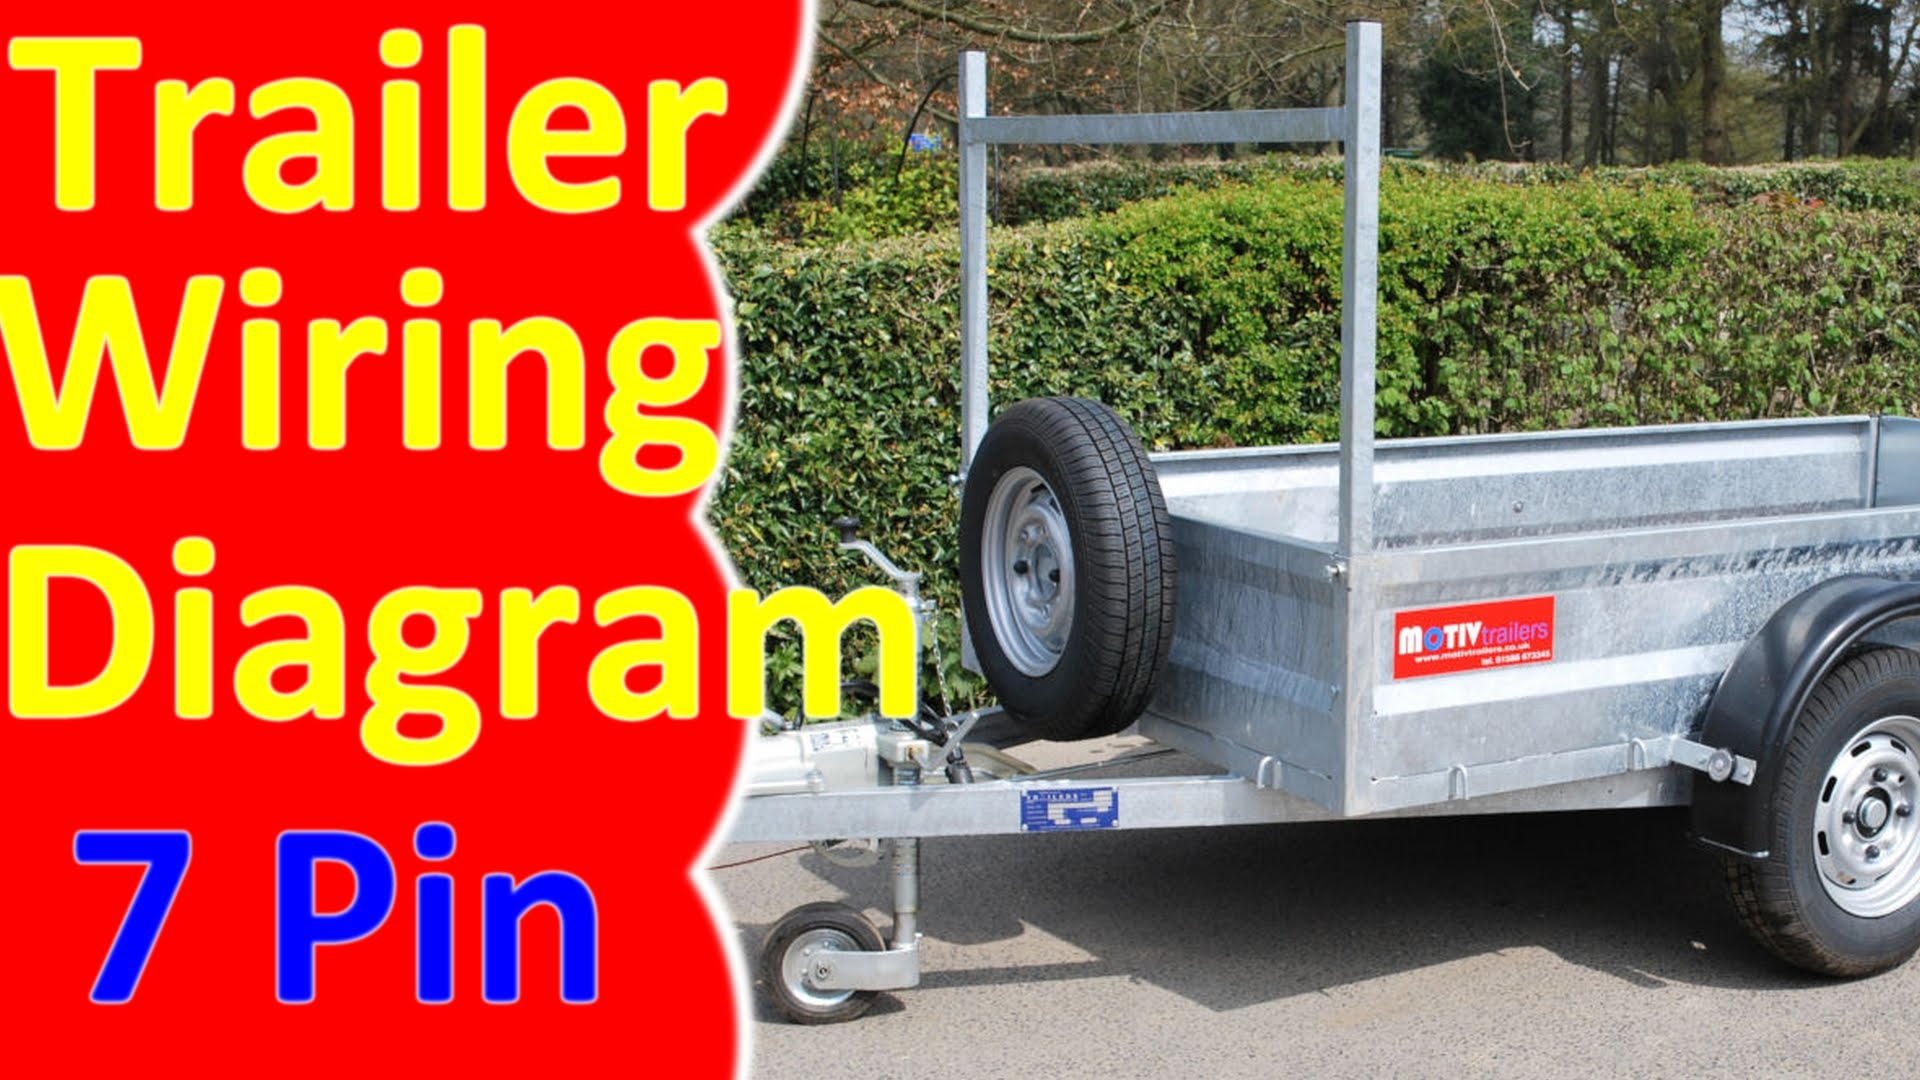 7 Pin Round Trailer Plug Wiring Diagram - Allove - Wiring Diagram For Trailer Lights Australia